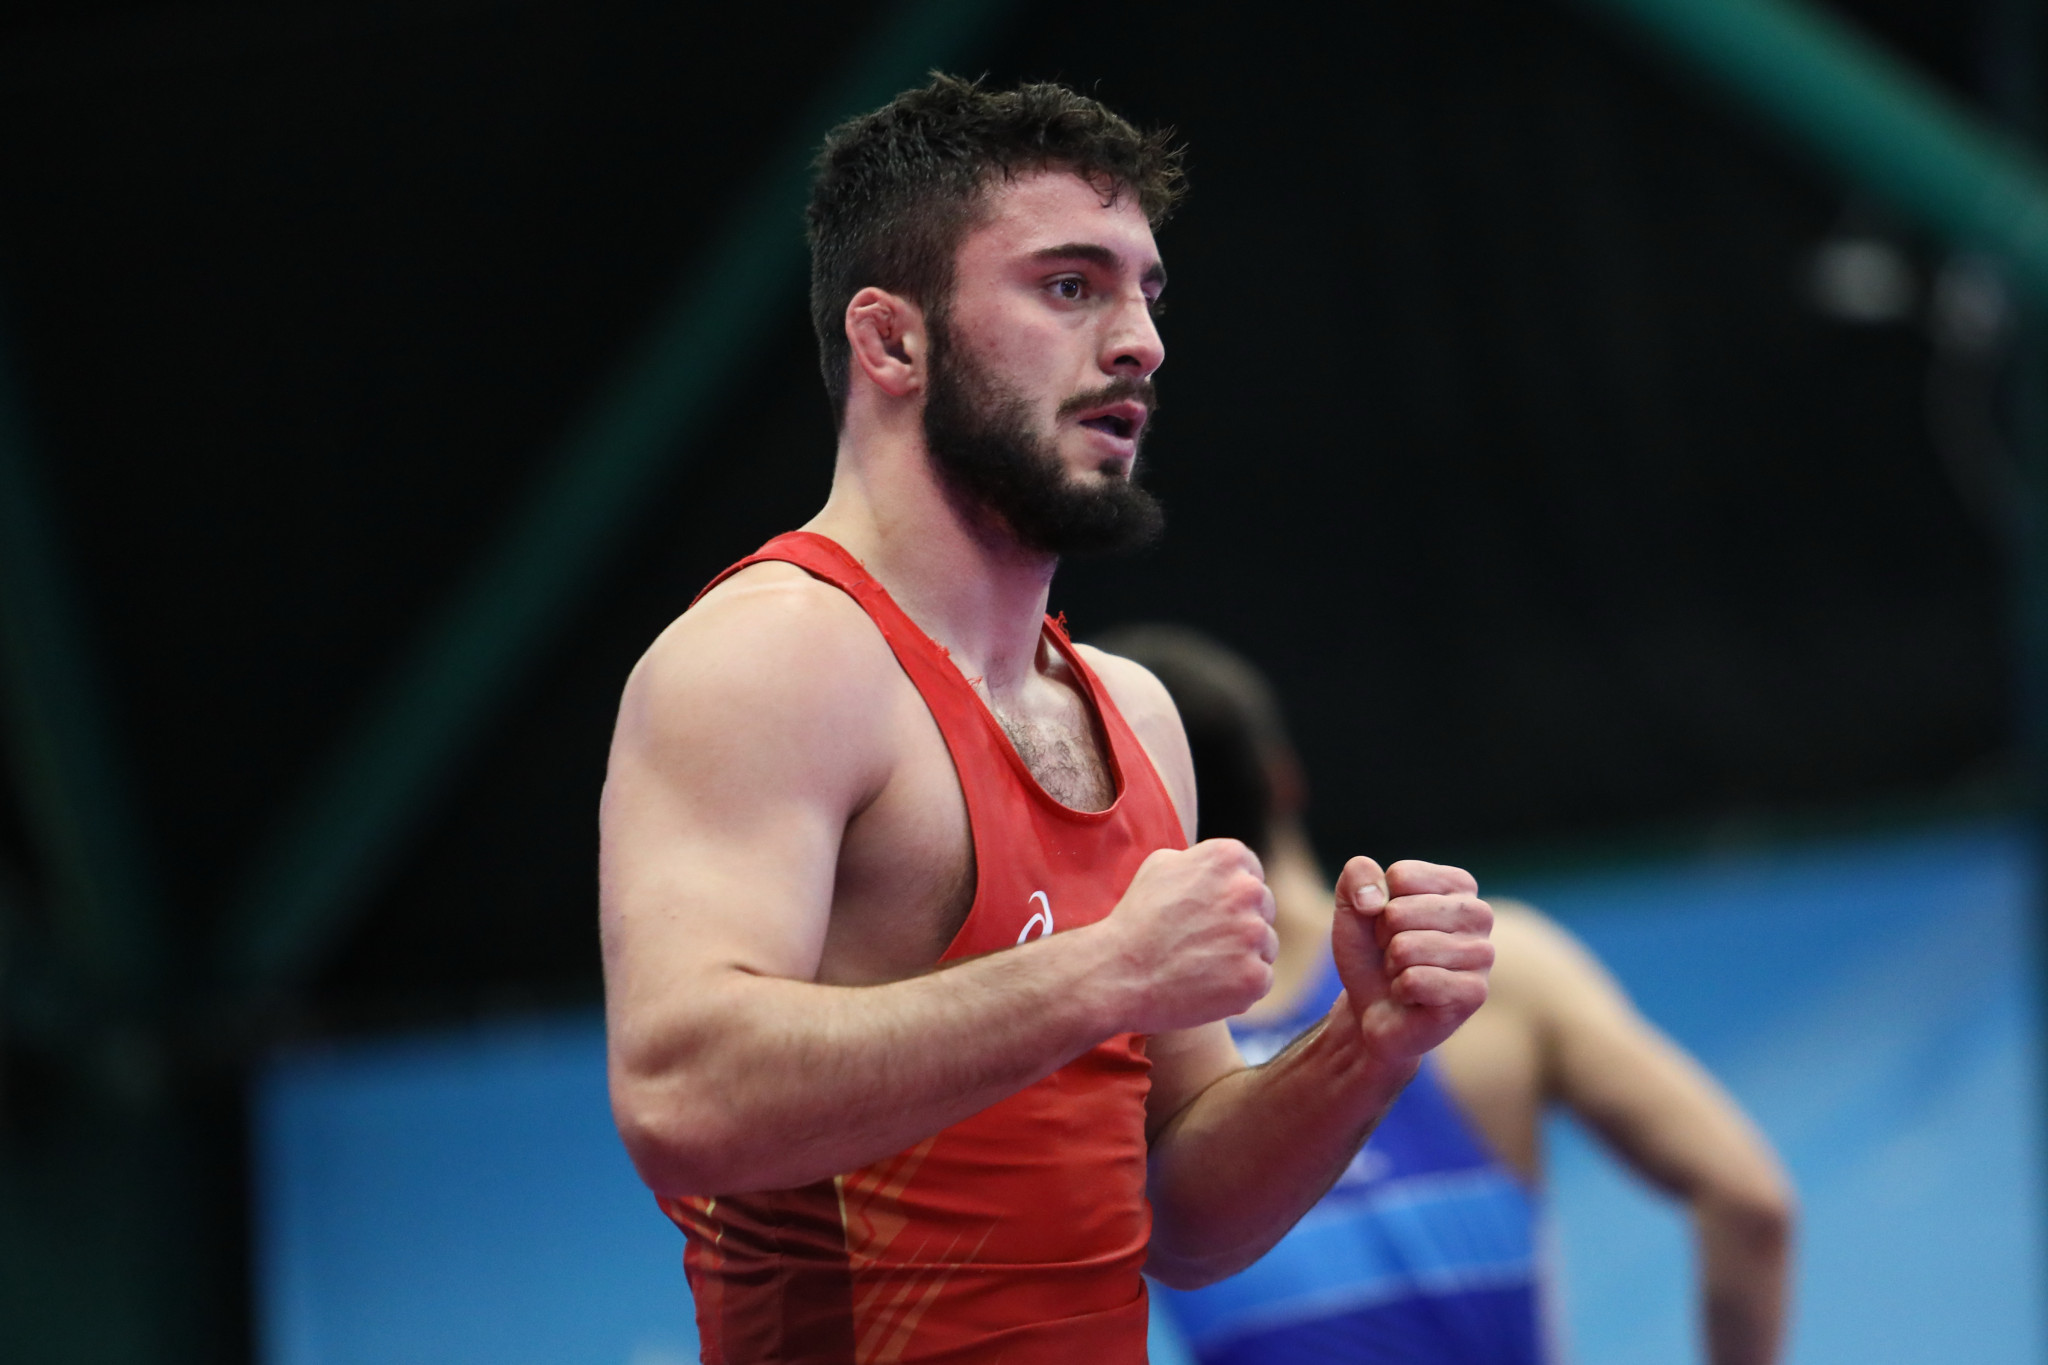 Russia power clear in wrestling as Games of the CIS Countries officially opens